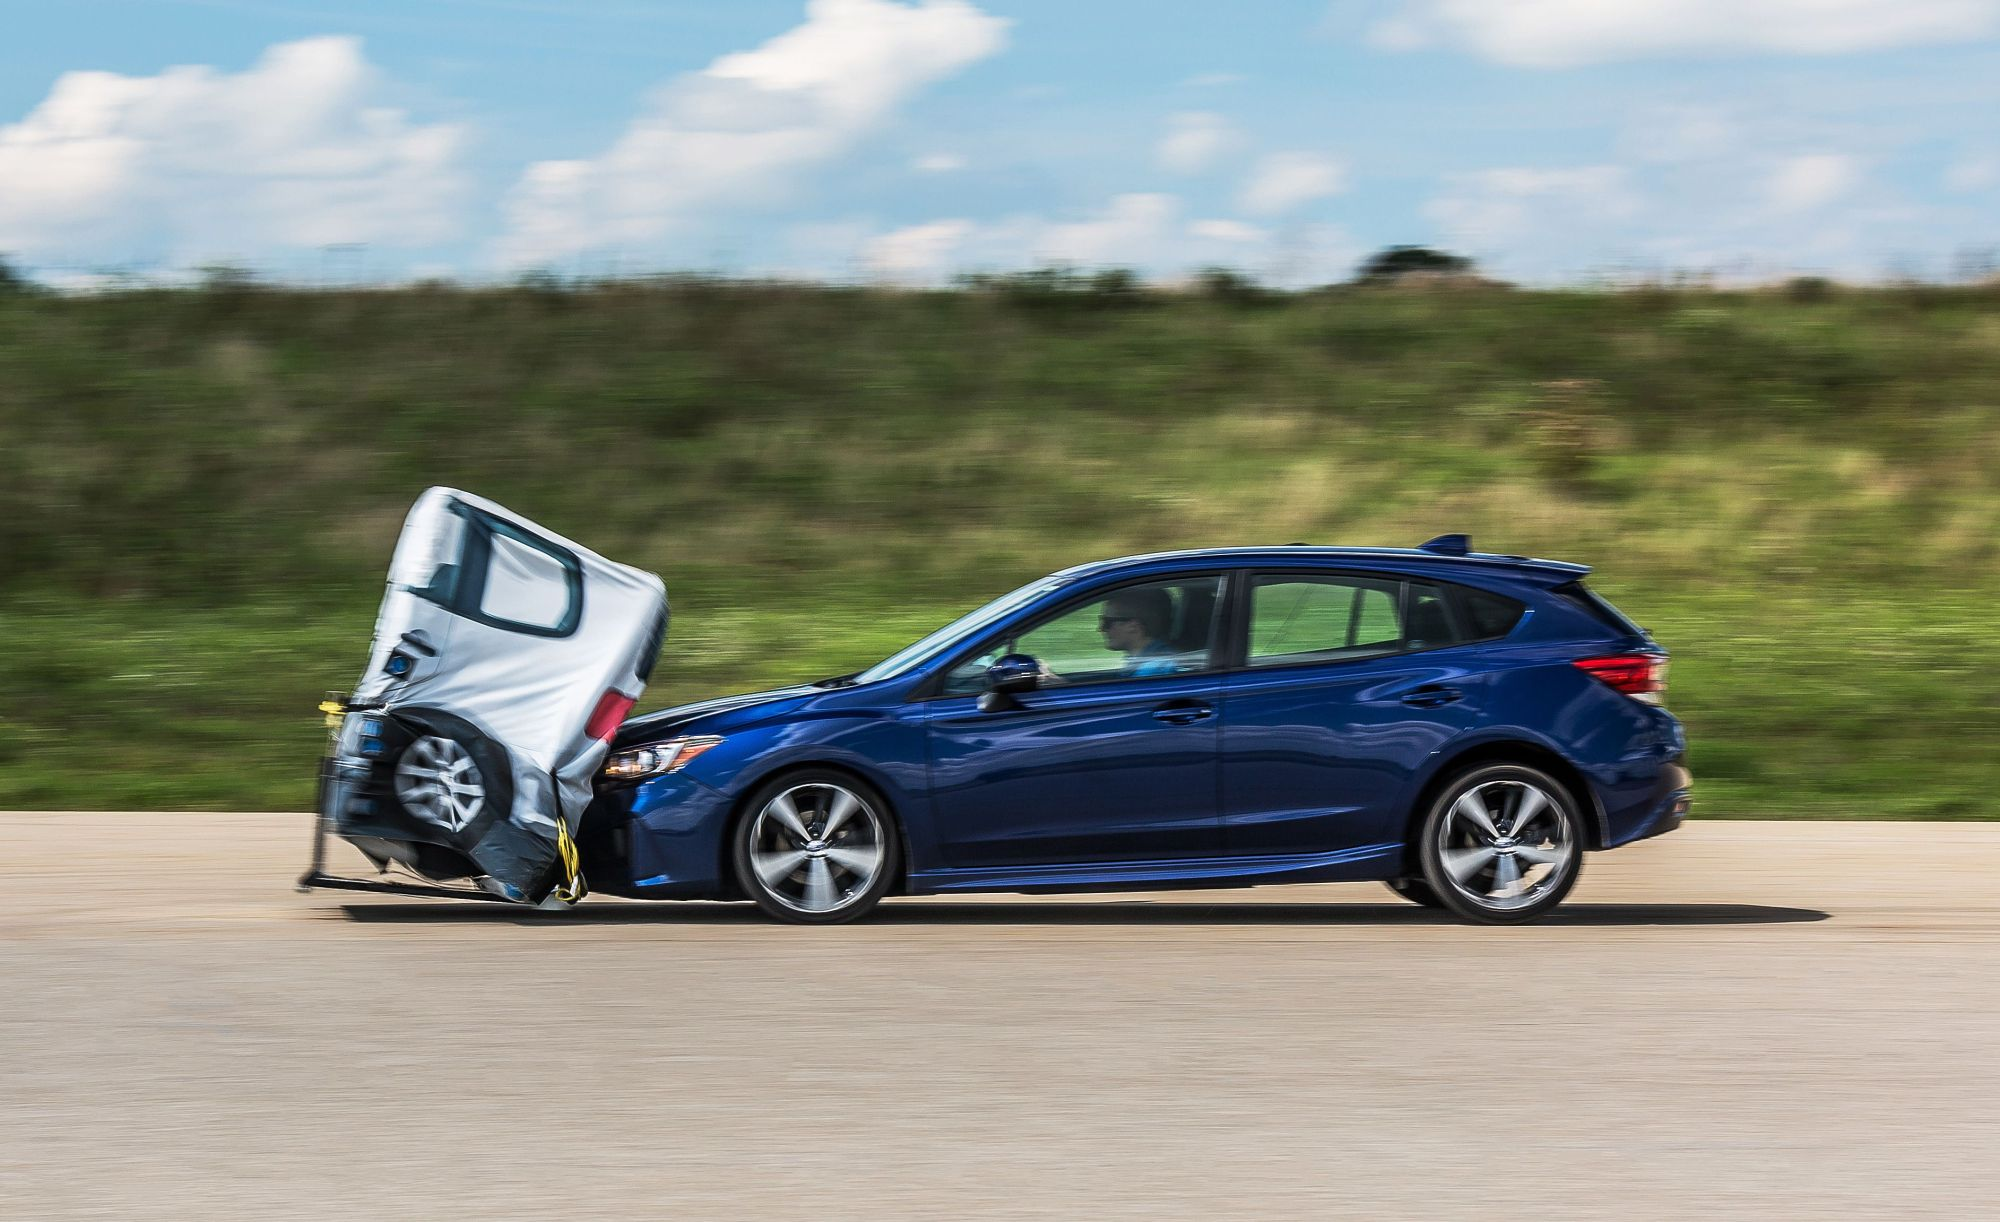 hight resolution of we crash four cars repeatedly to test the latest automatic braking safety systems